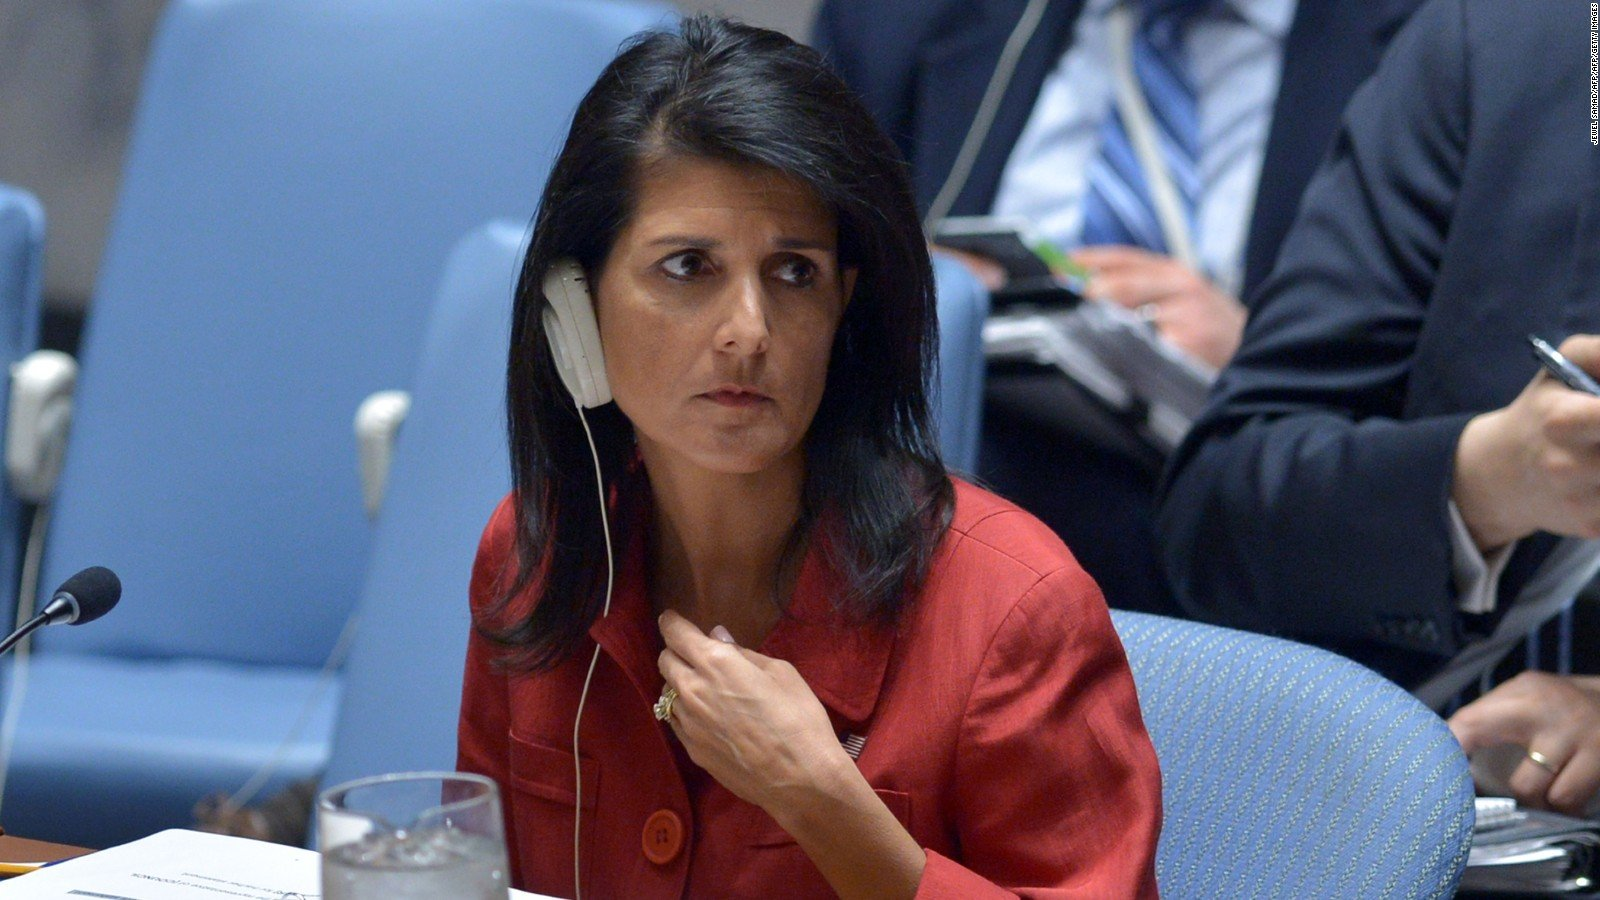 CALLED OUT Nikki Haley Goes After Russia At The UN VIDEO